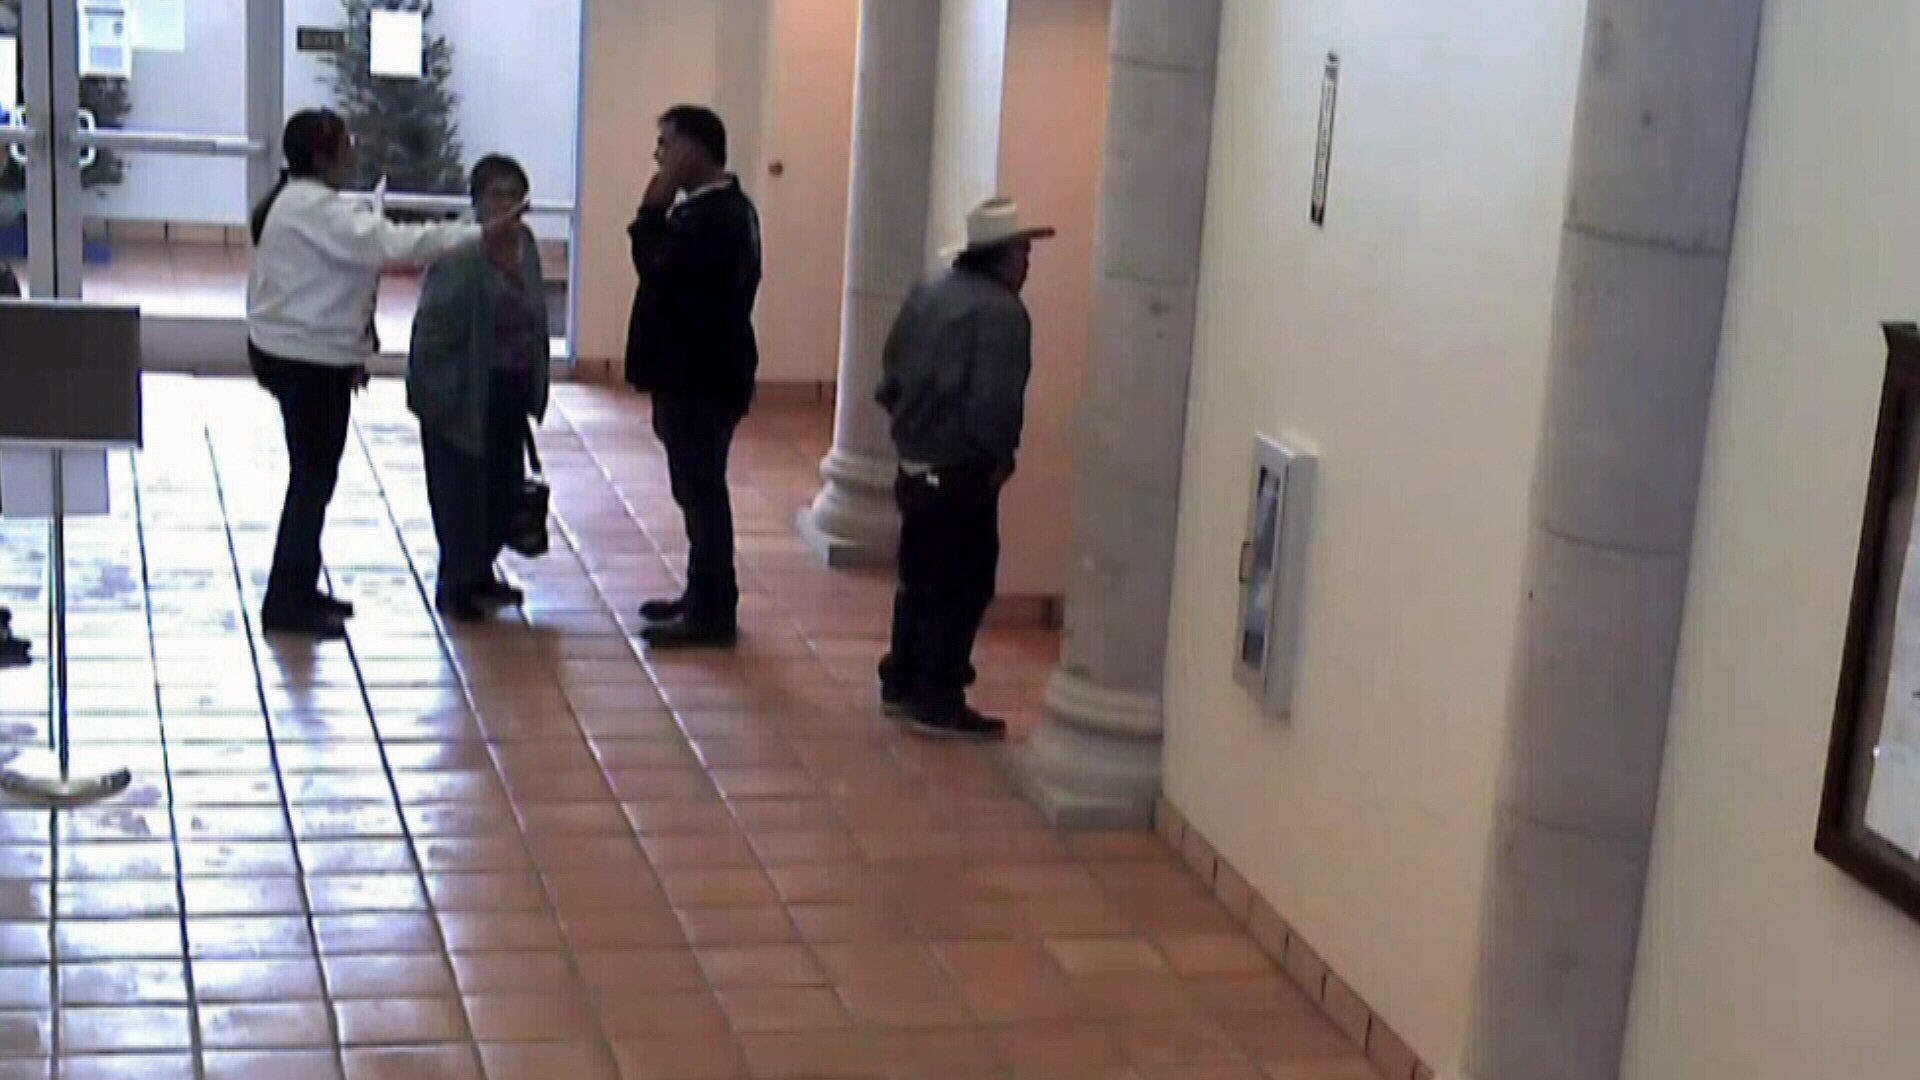 Surveillance video obtained by 6 Investigates shows a possible election violation in Robstown (KRIS 6 News).